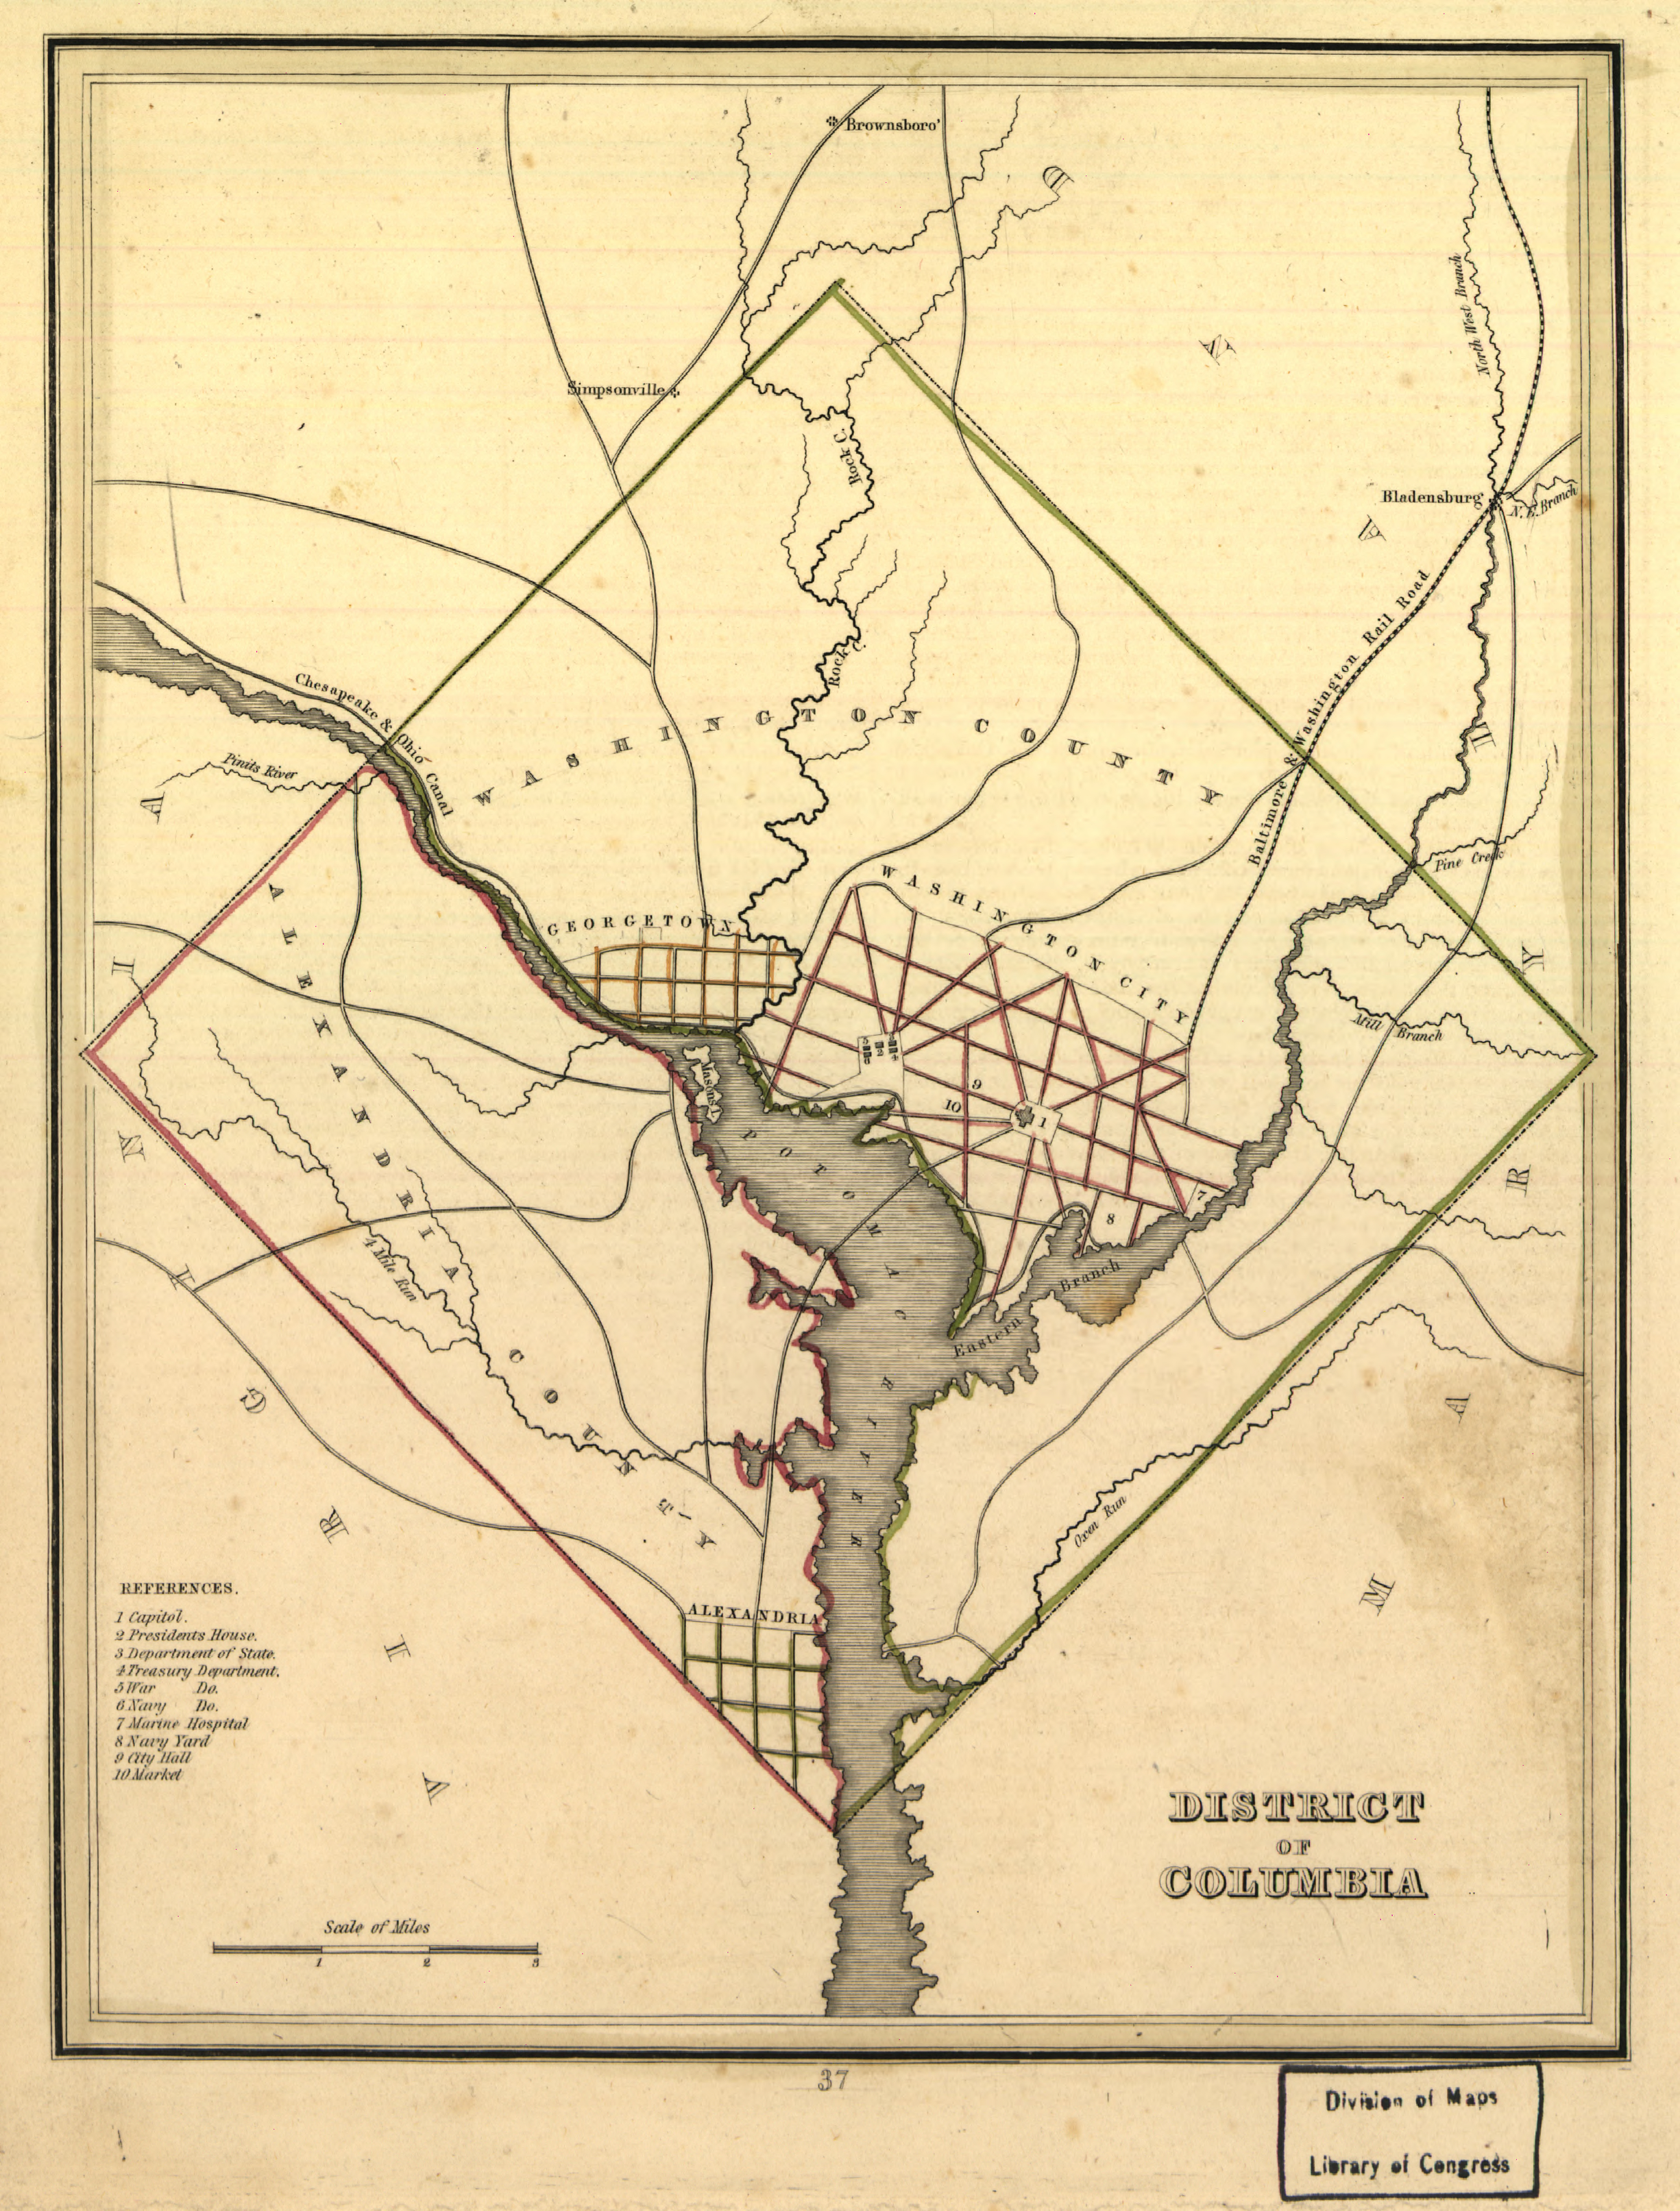 Map of the District of Columbia in 1835, prior to the retrocession, including Washington City, Georgetown, Washington County, Alexandria City, and Alexandria County. Also depicts major buildings, roads, and points of interest. Library of Congress, Geography and Maps Division.